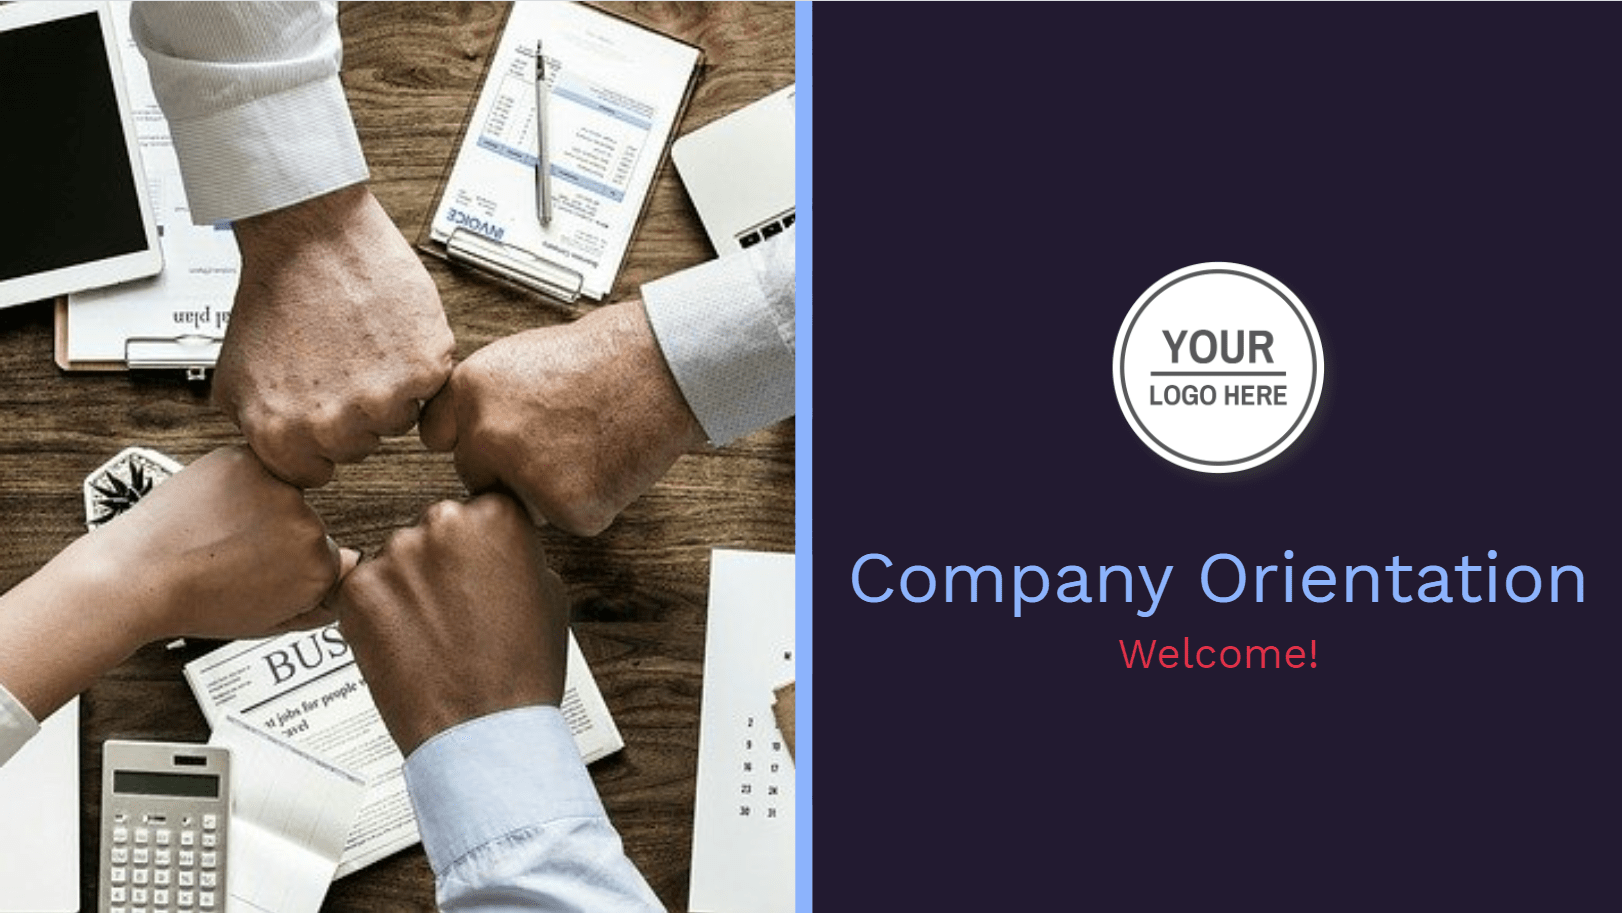 This template can be used during company orientation conferences, pre-conference summaries, or just as a printable document. To kickstart the meeting by describing the company, culture, and facilities. The templates prepared on Decktopus are fully customizable according to the company branding like logo, color palettes, and fonts.